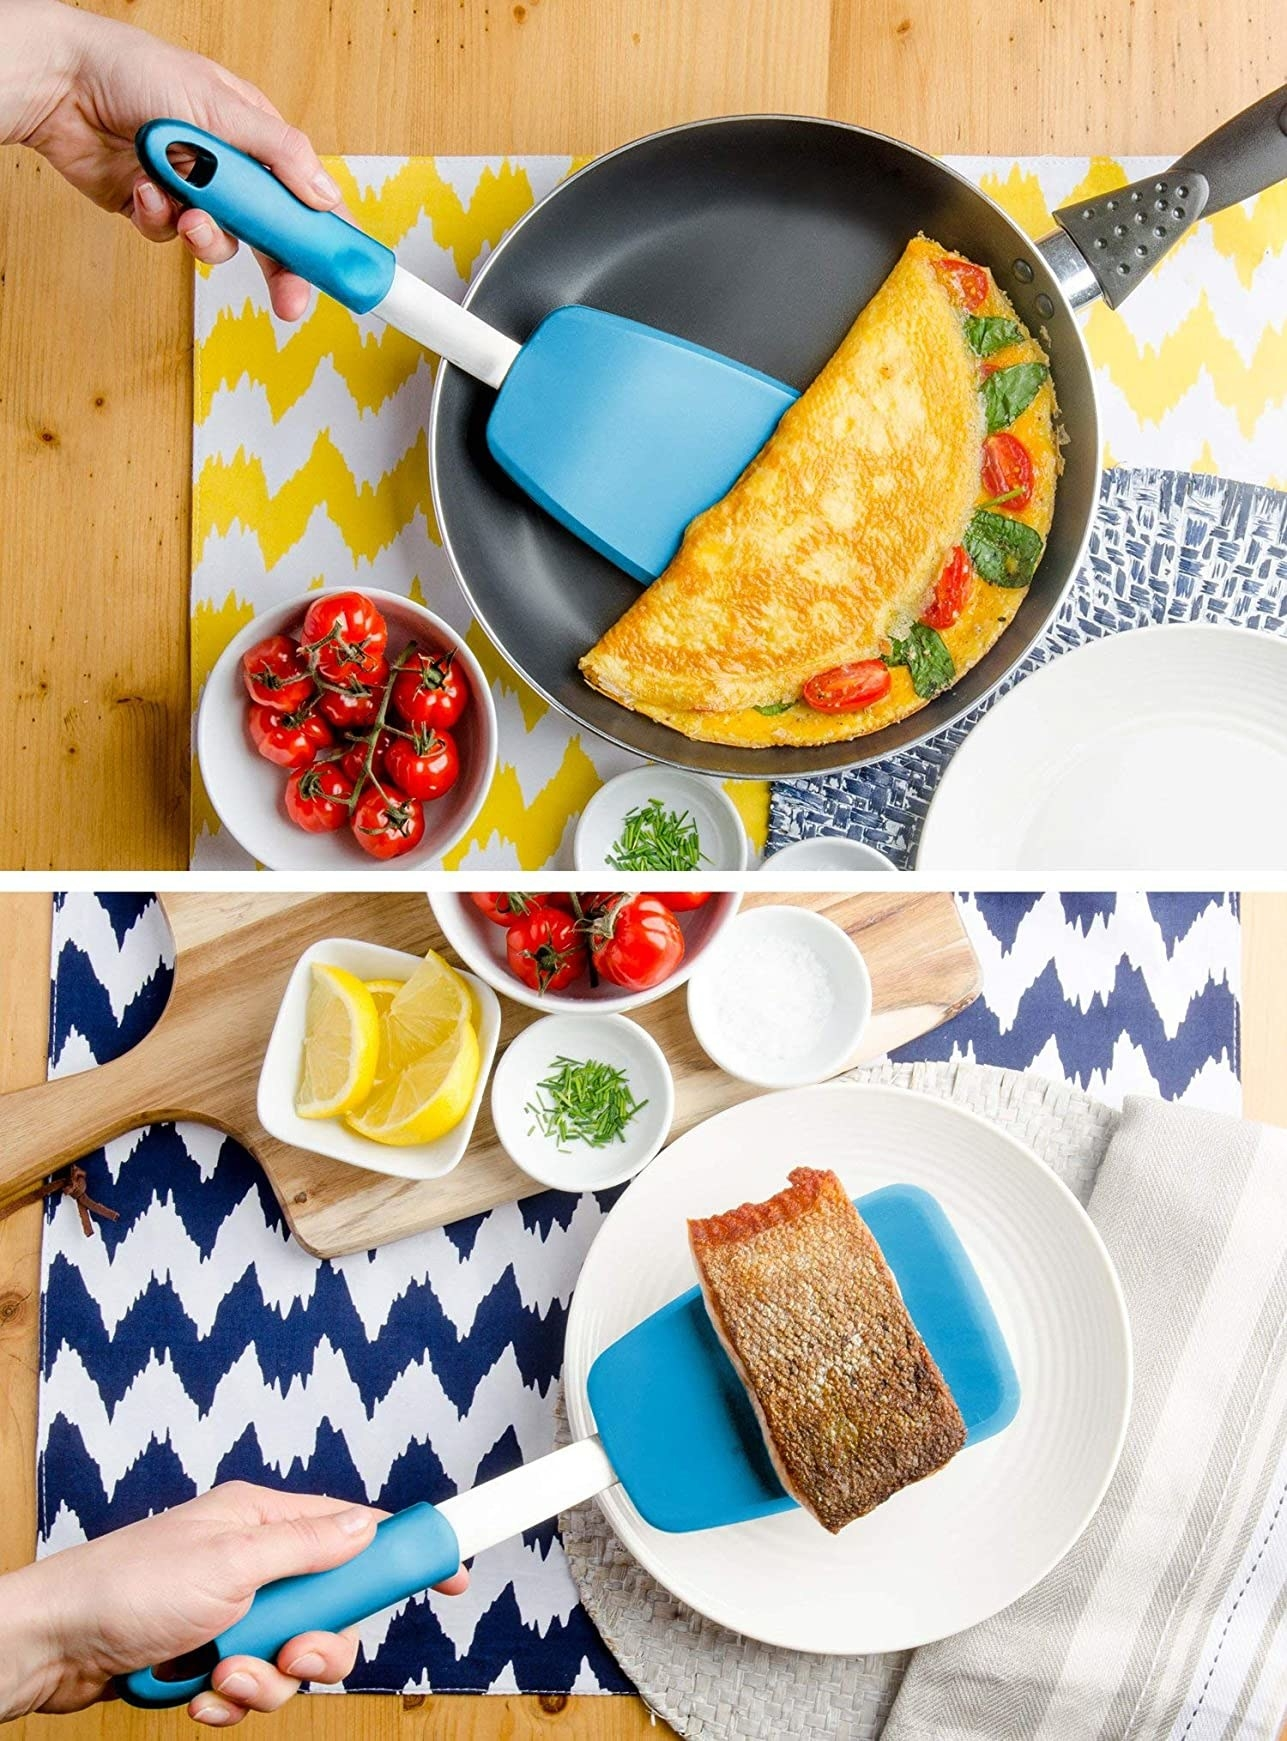 Hand using the blue extra-large spatula to flip an omelette and a piece of salmon